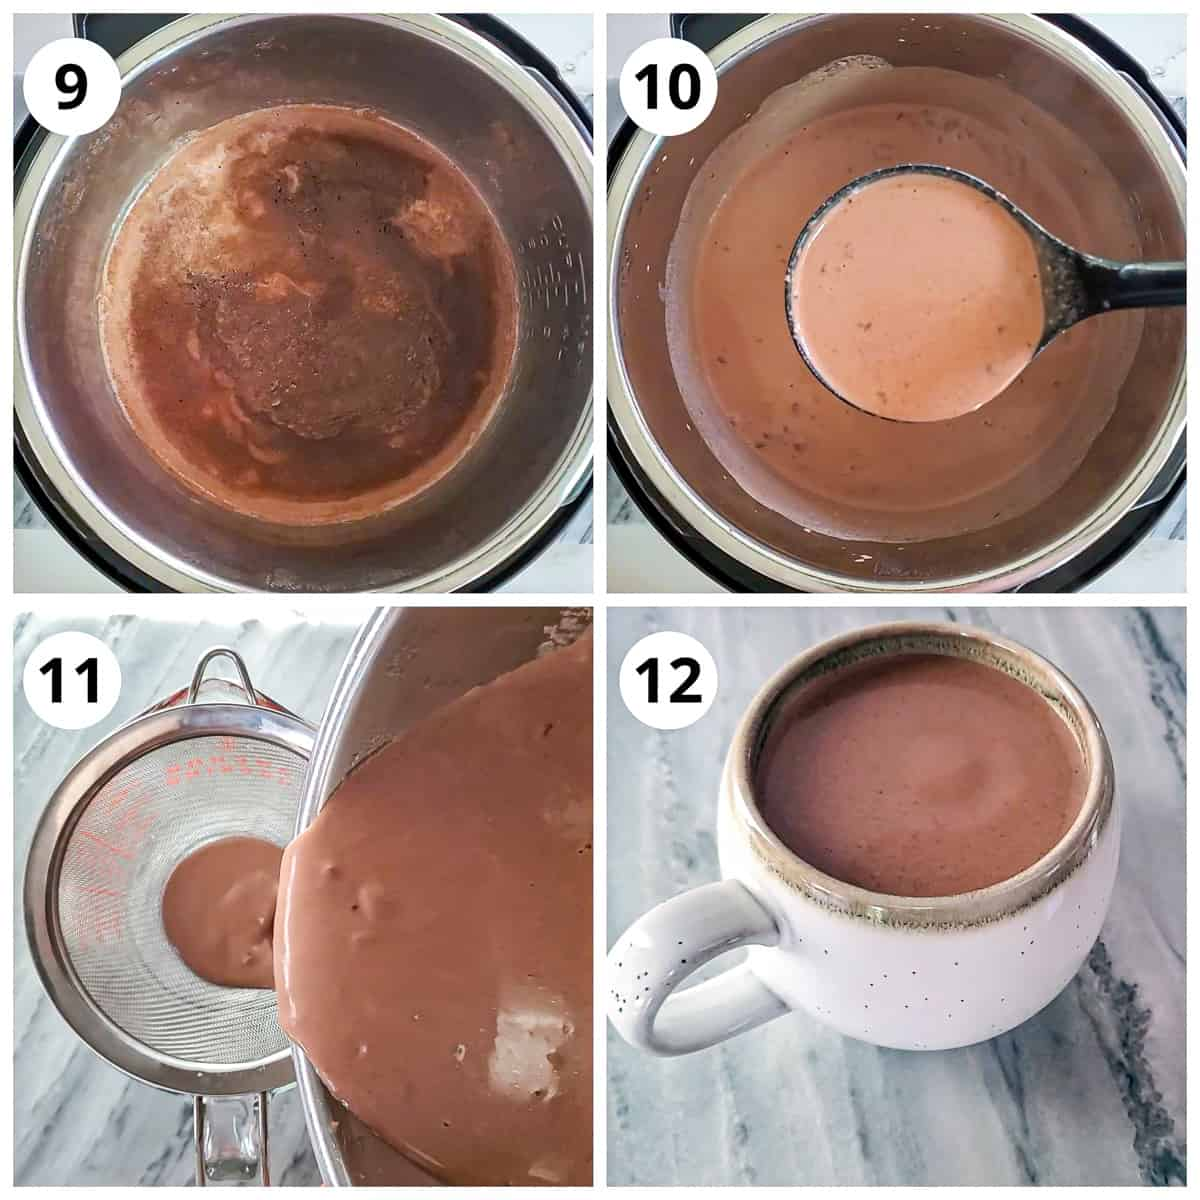 Opening the lid and mixing, straining and serving hot chocolate